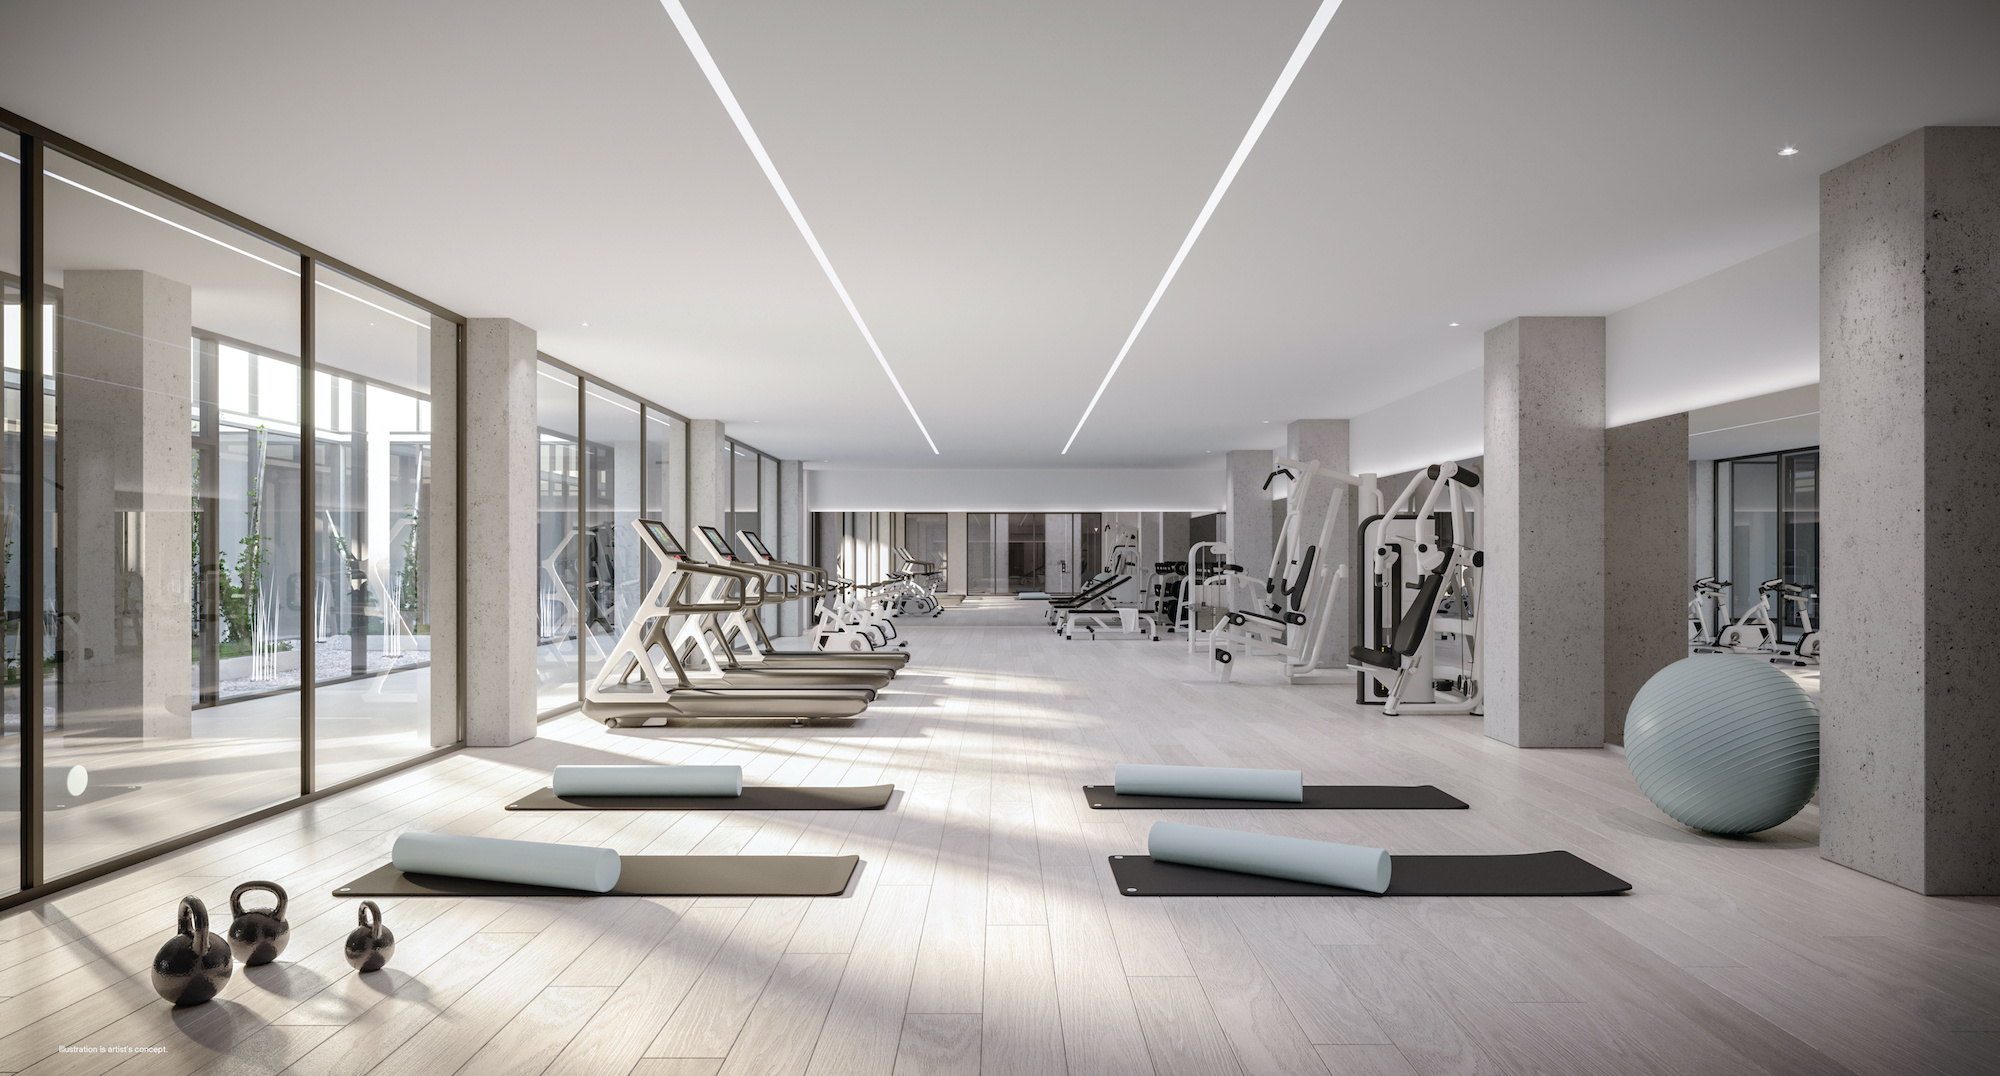 Rendering of 28 Eastern Condos fitness studio.